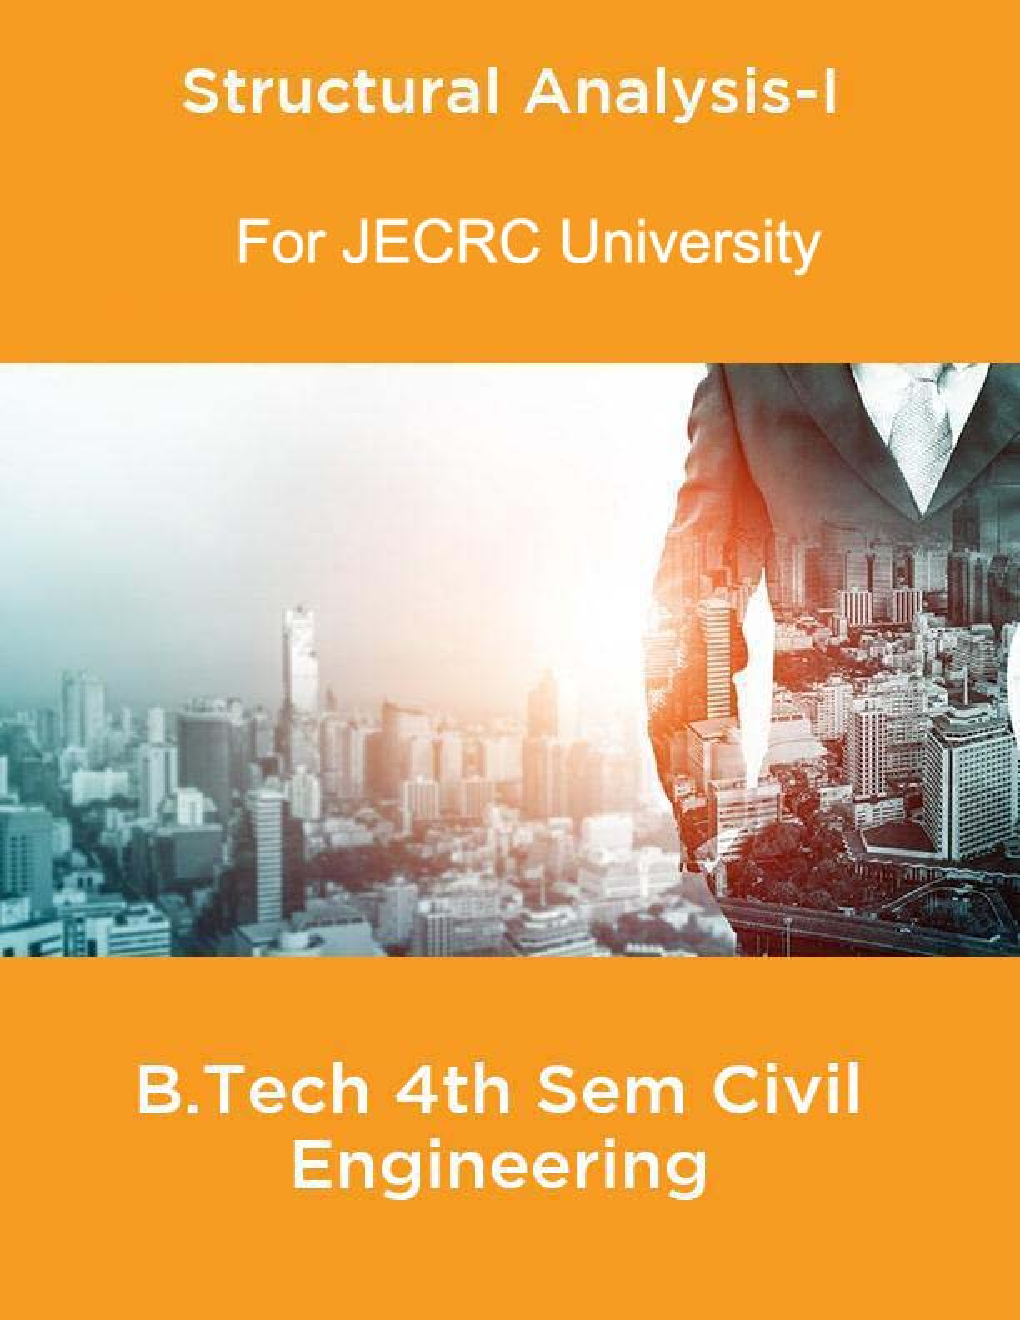 Structural Analysis-I B.Tech 4th Sem Civil Engineering For JECRC University - Page 1